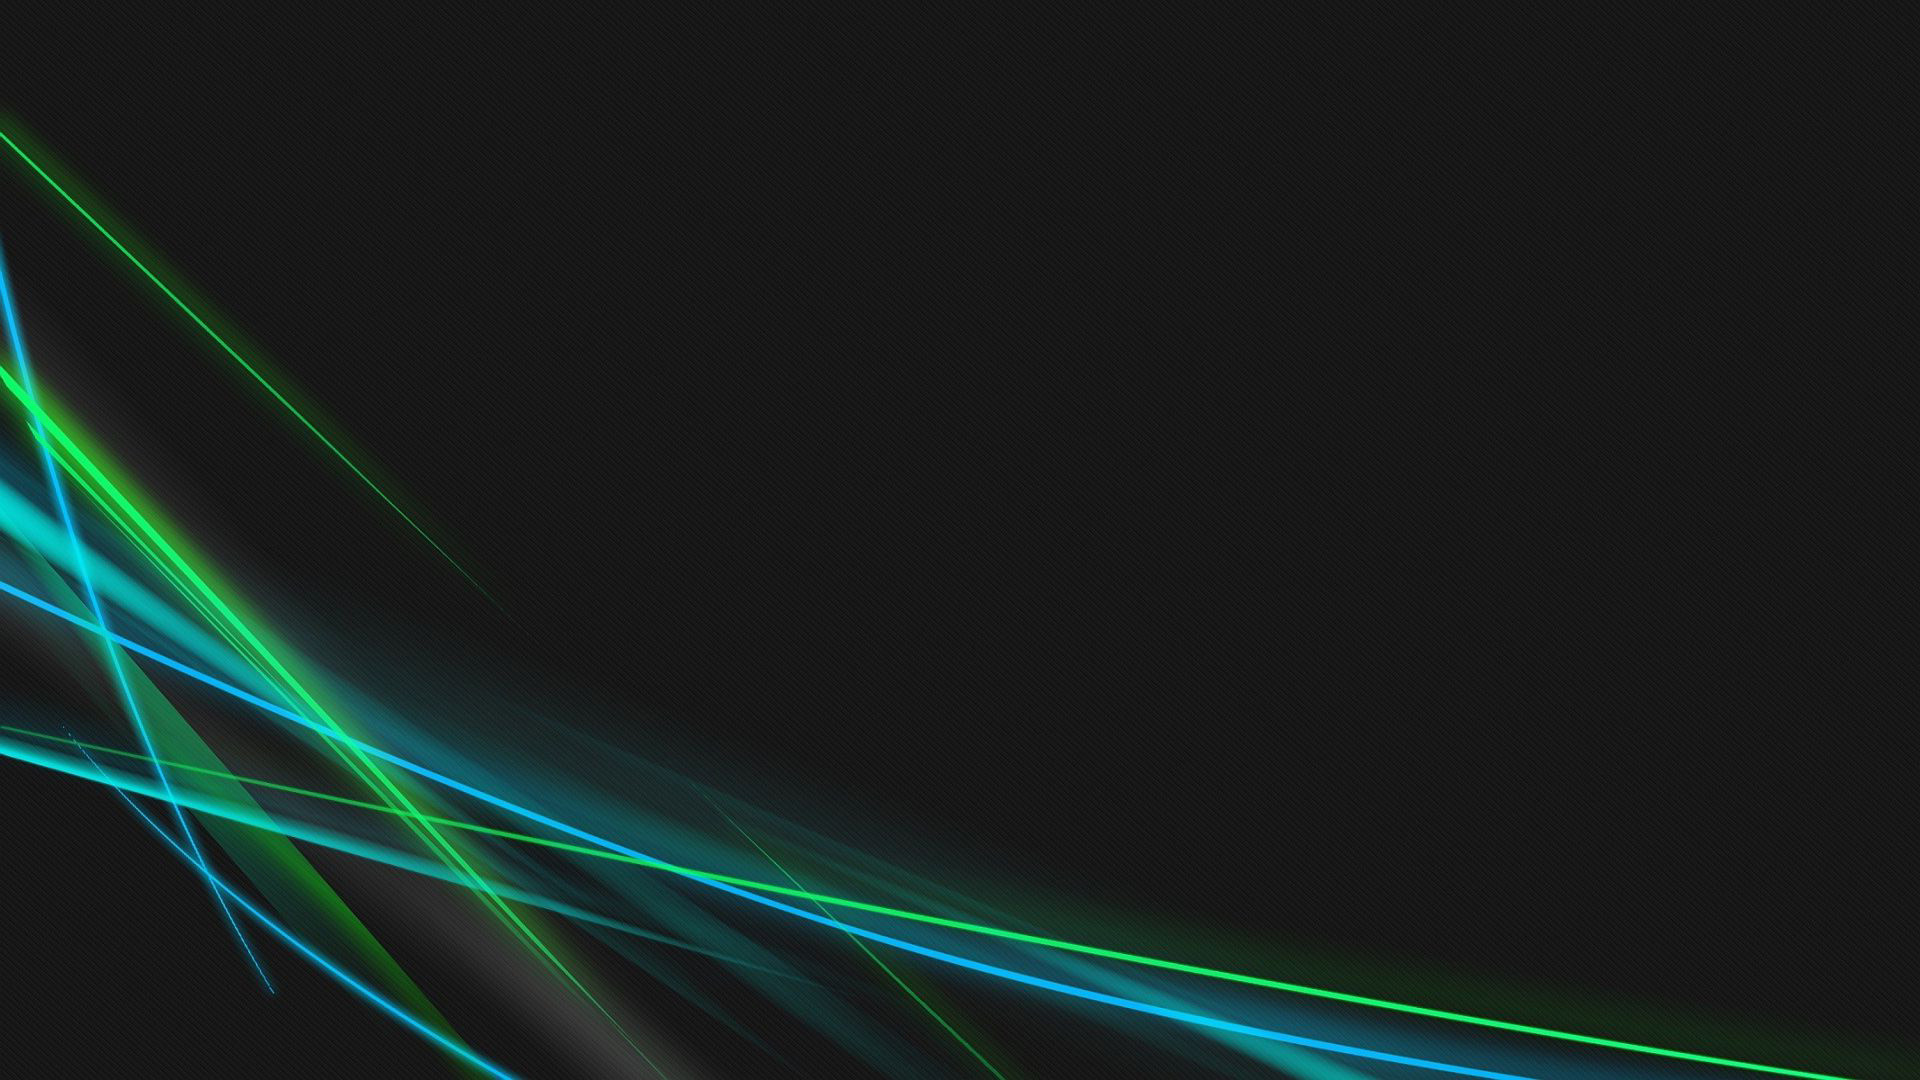 1920x1080 Blue And Green Neon Curves Wallpaper 6551